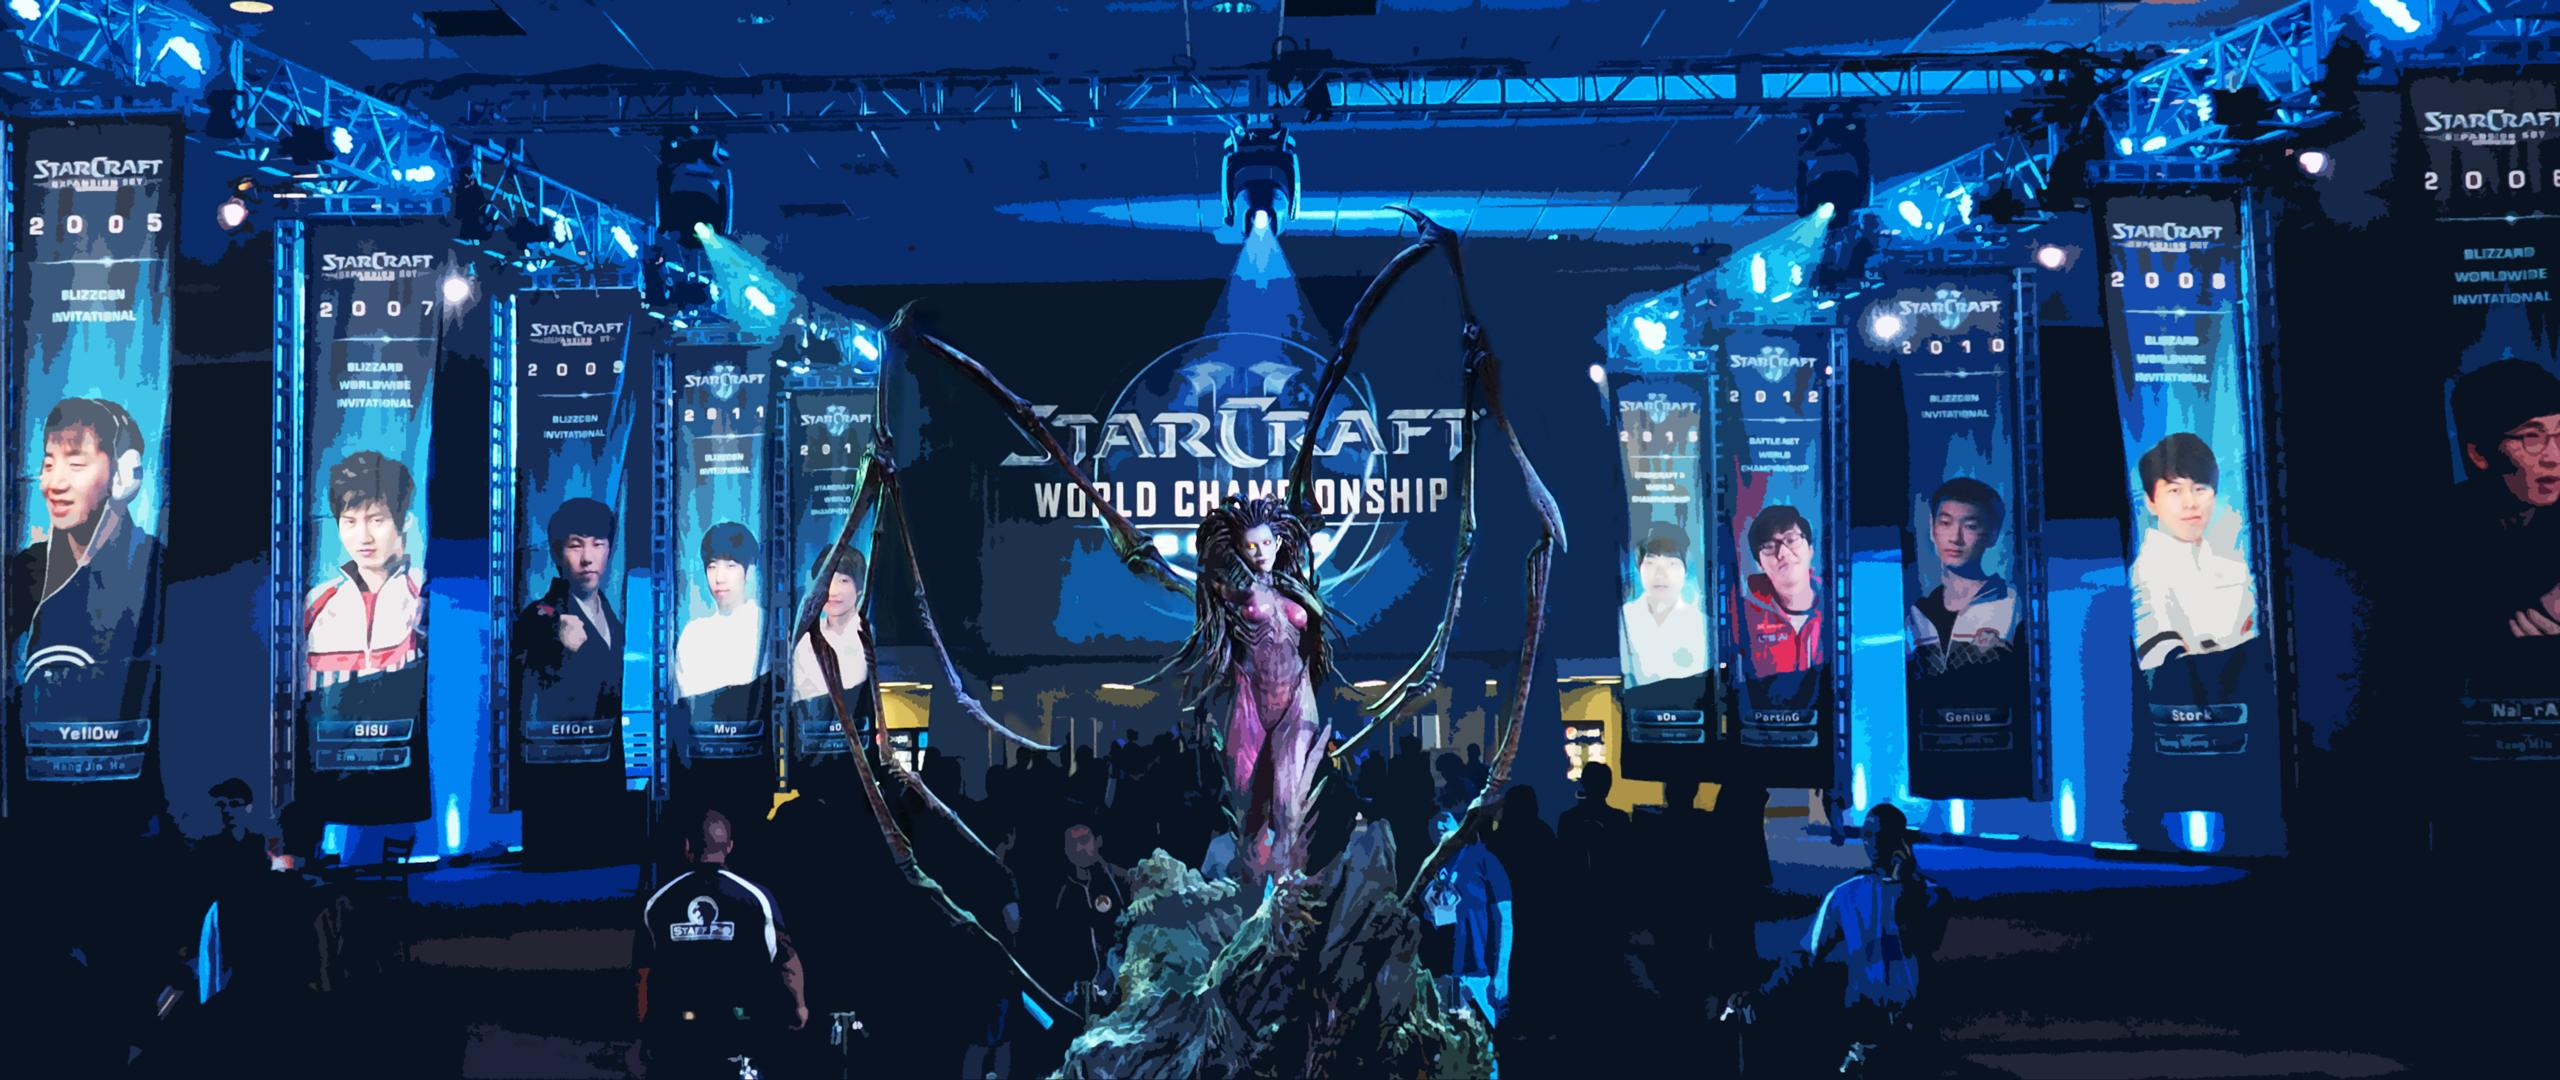 I-made-a-cool-from-a-nice-picture-I-took-last-WCS-Blizzcon-finally-got-around-to-edit-it-f-wallpaper-wp3607164